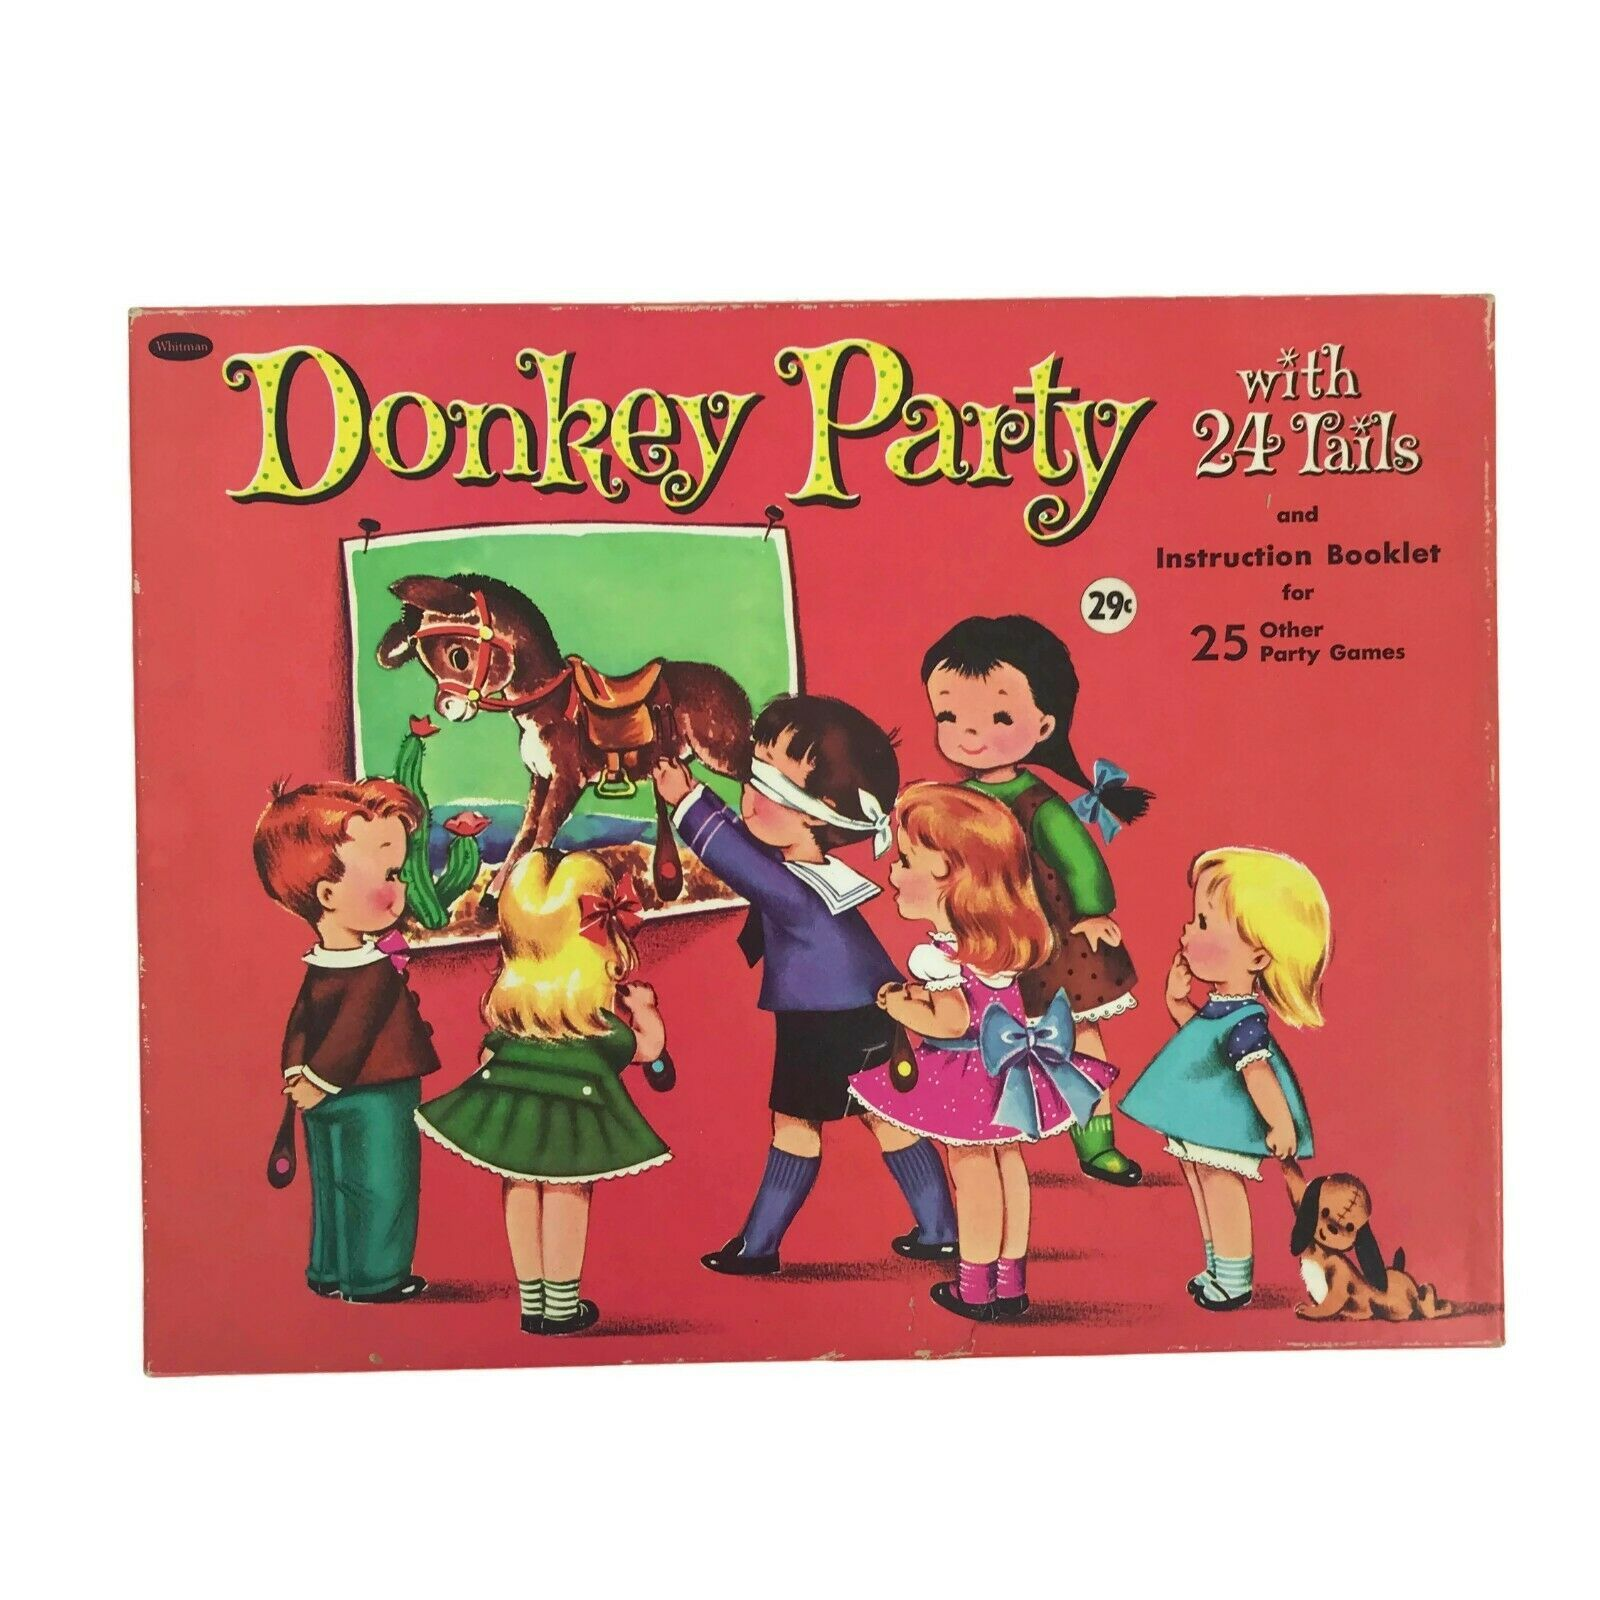 Vintage 1960s Whitman Donkey Party Birthday Pin the Tail on Donkey Game 24 Tails